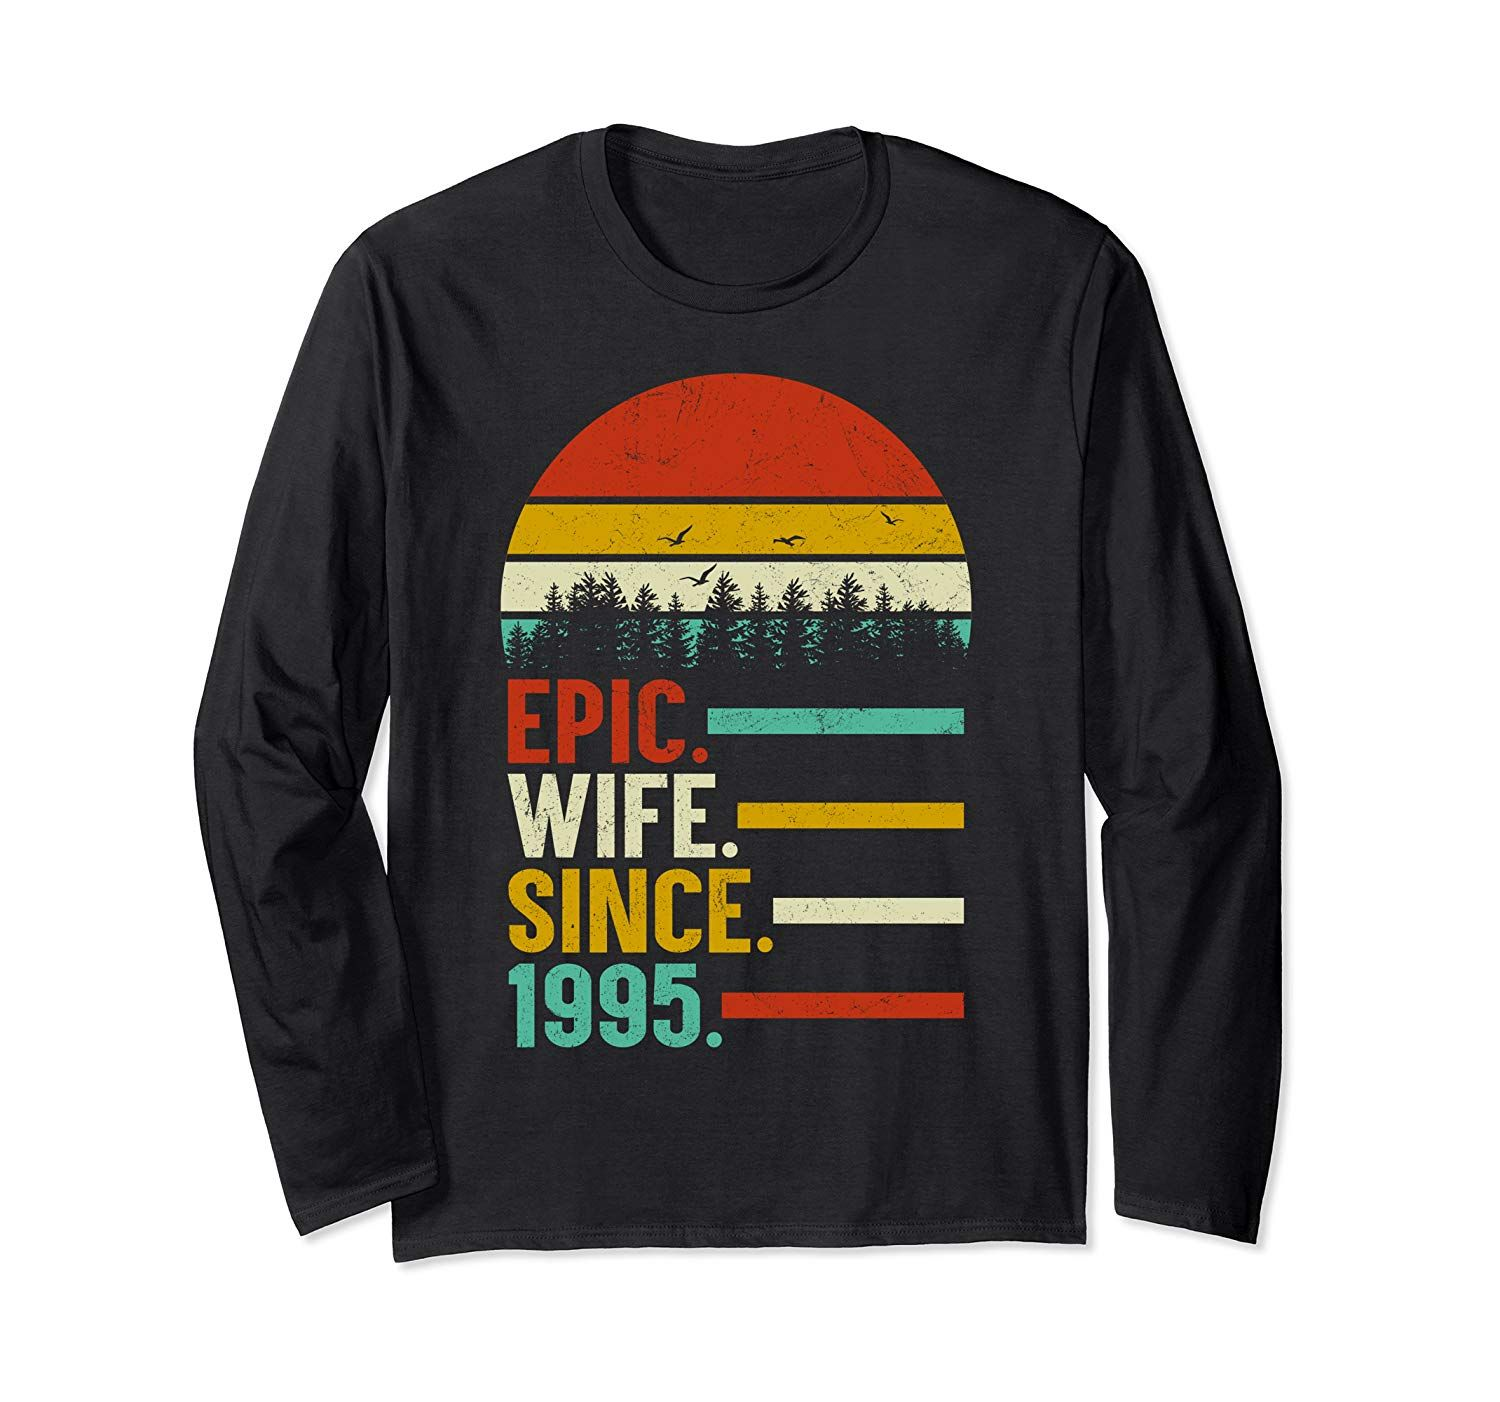 Epic Wife Since 1995, 24th Wedding Anniversary Gift For